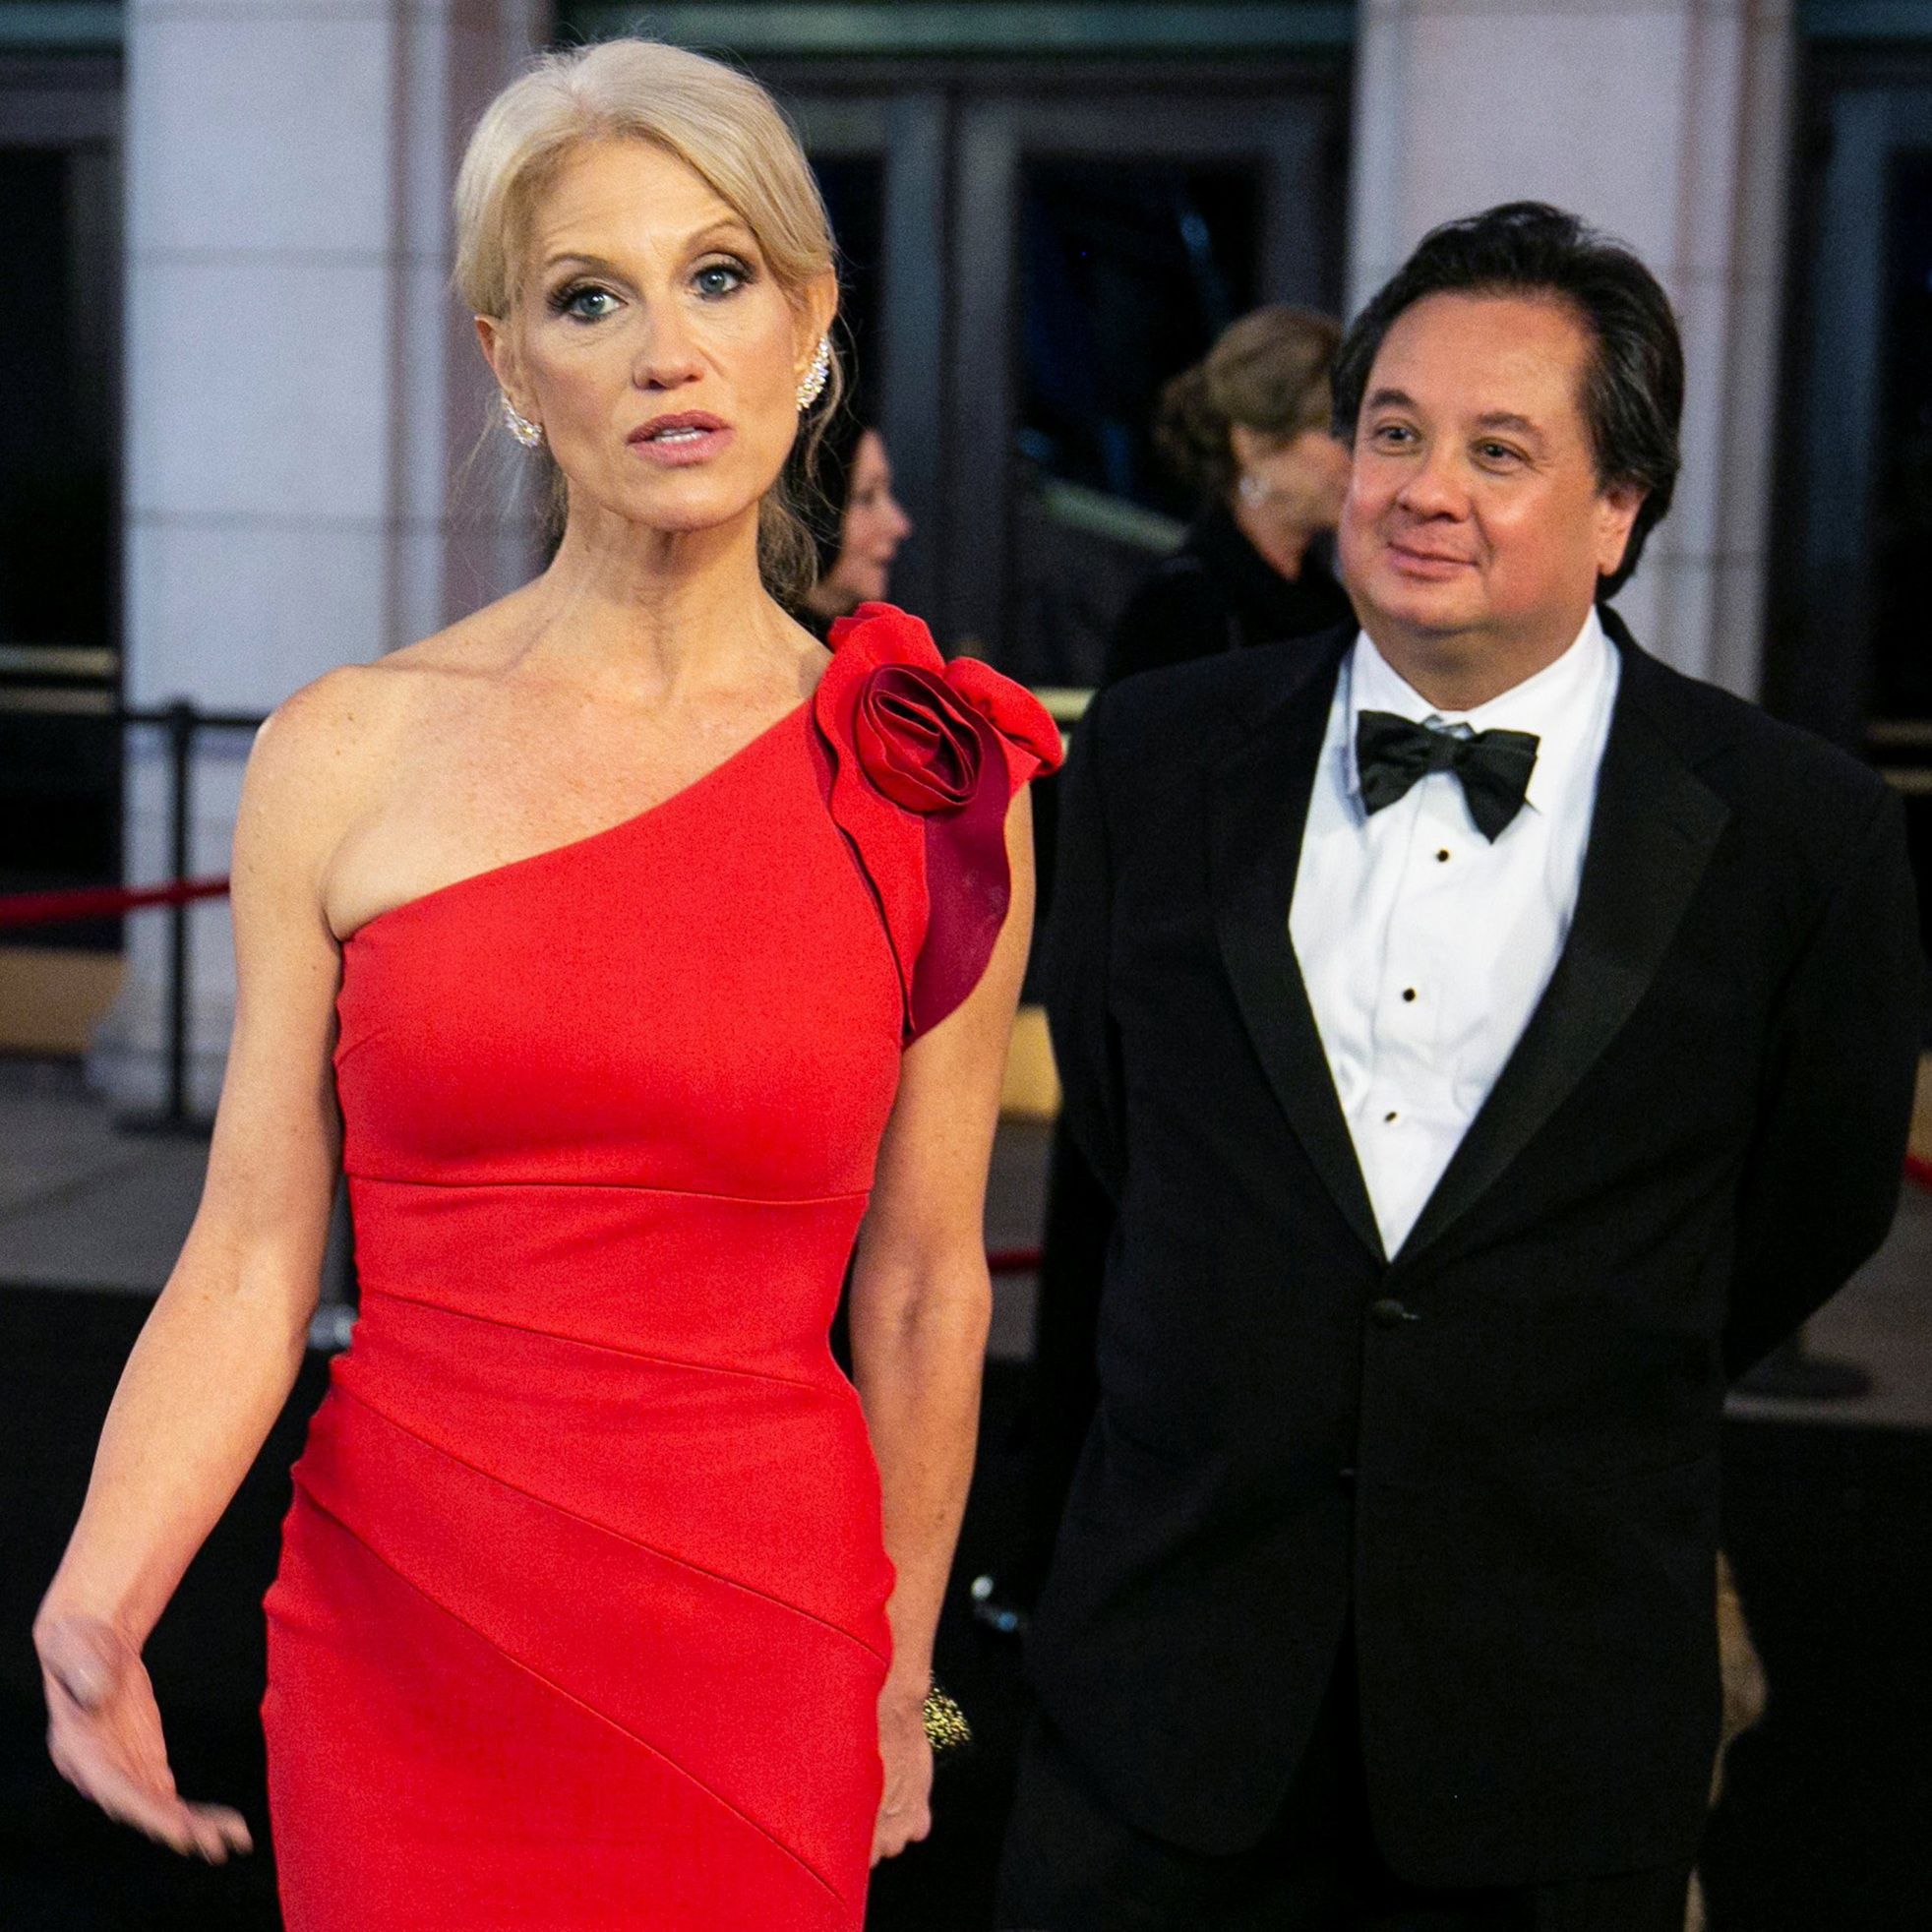 Conway on husband's feud with Trump: 'I'm not being asked to choose'